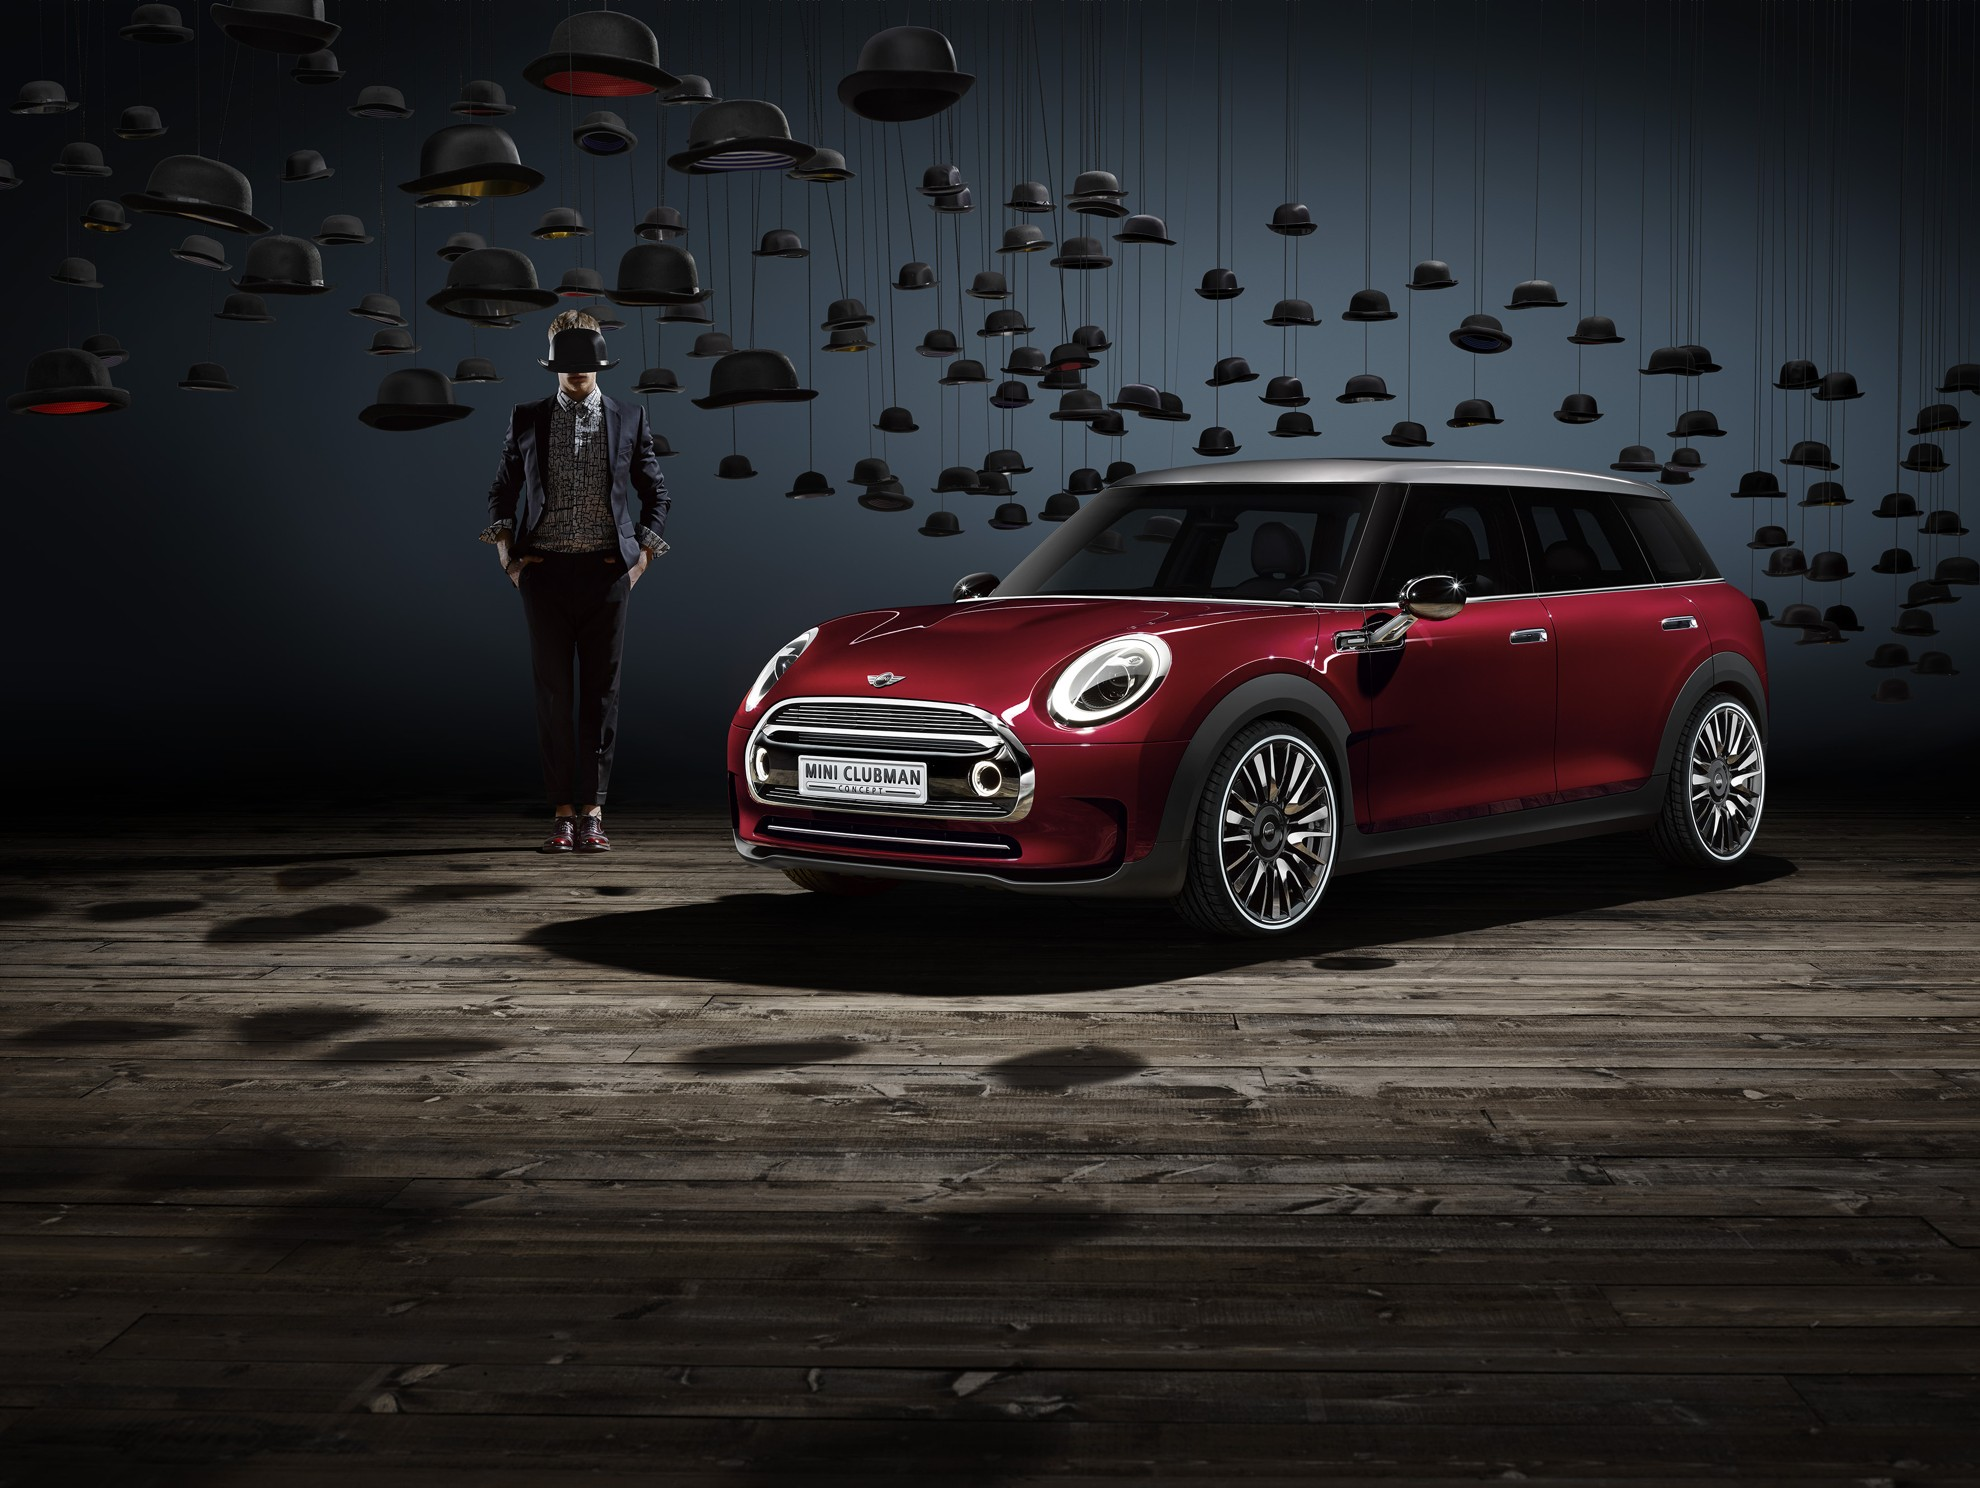 MINI_Clubman_Concept_Car